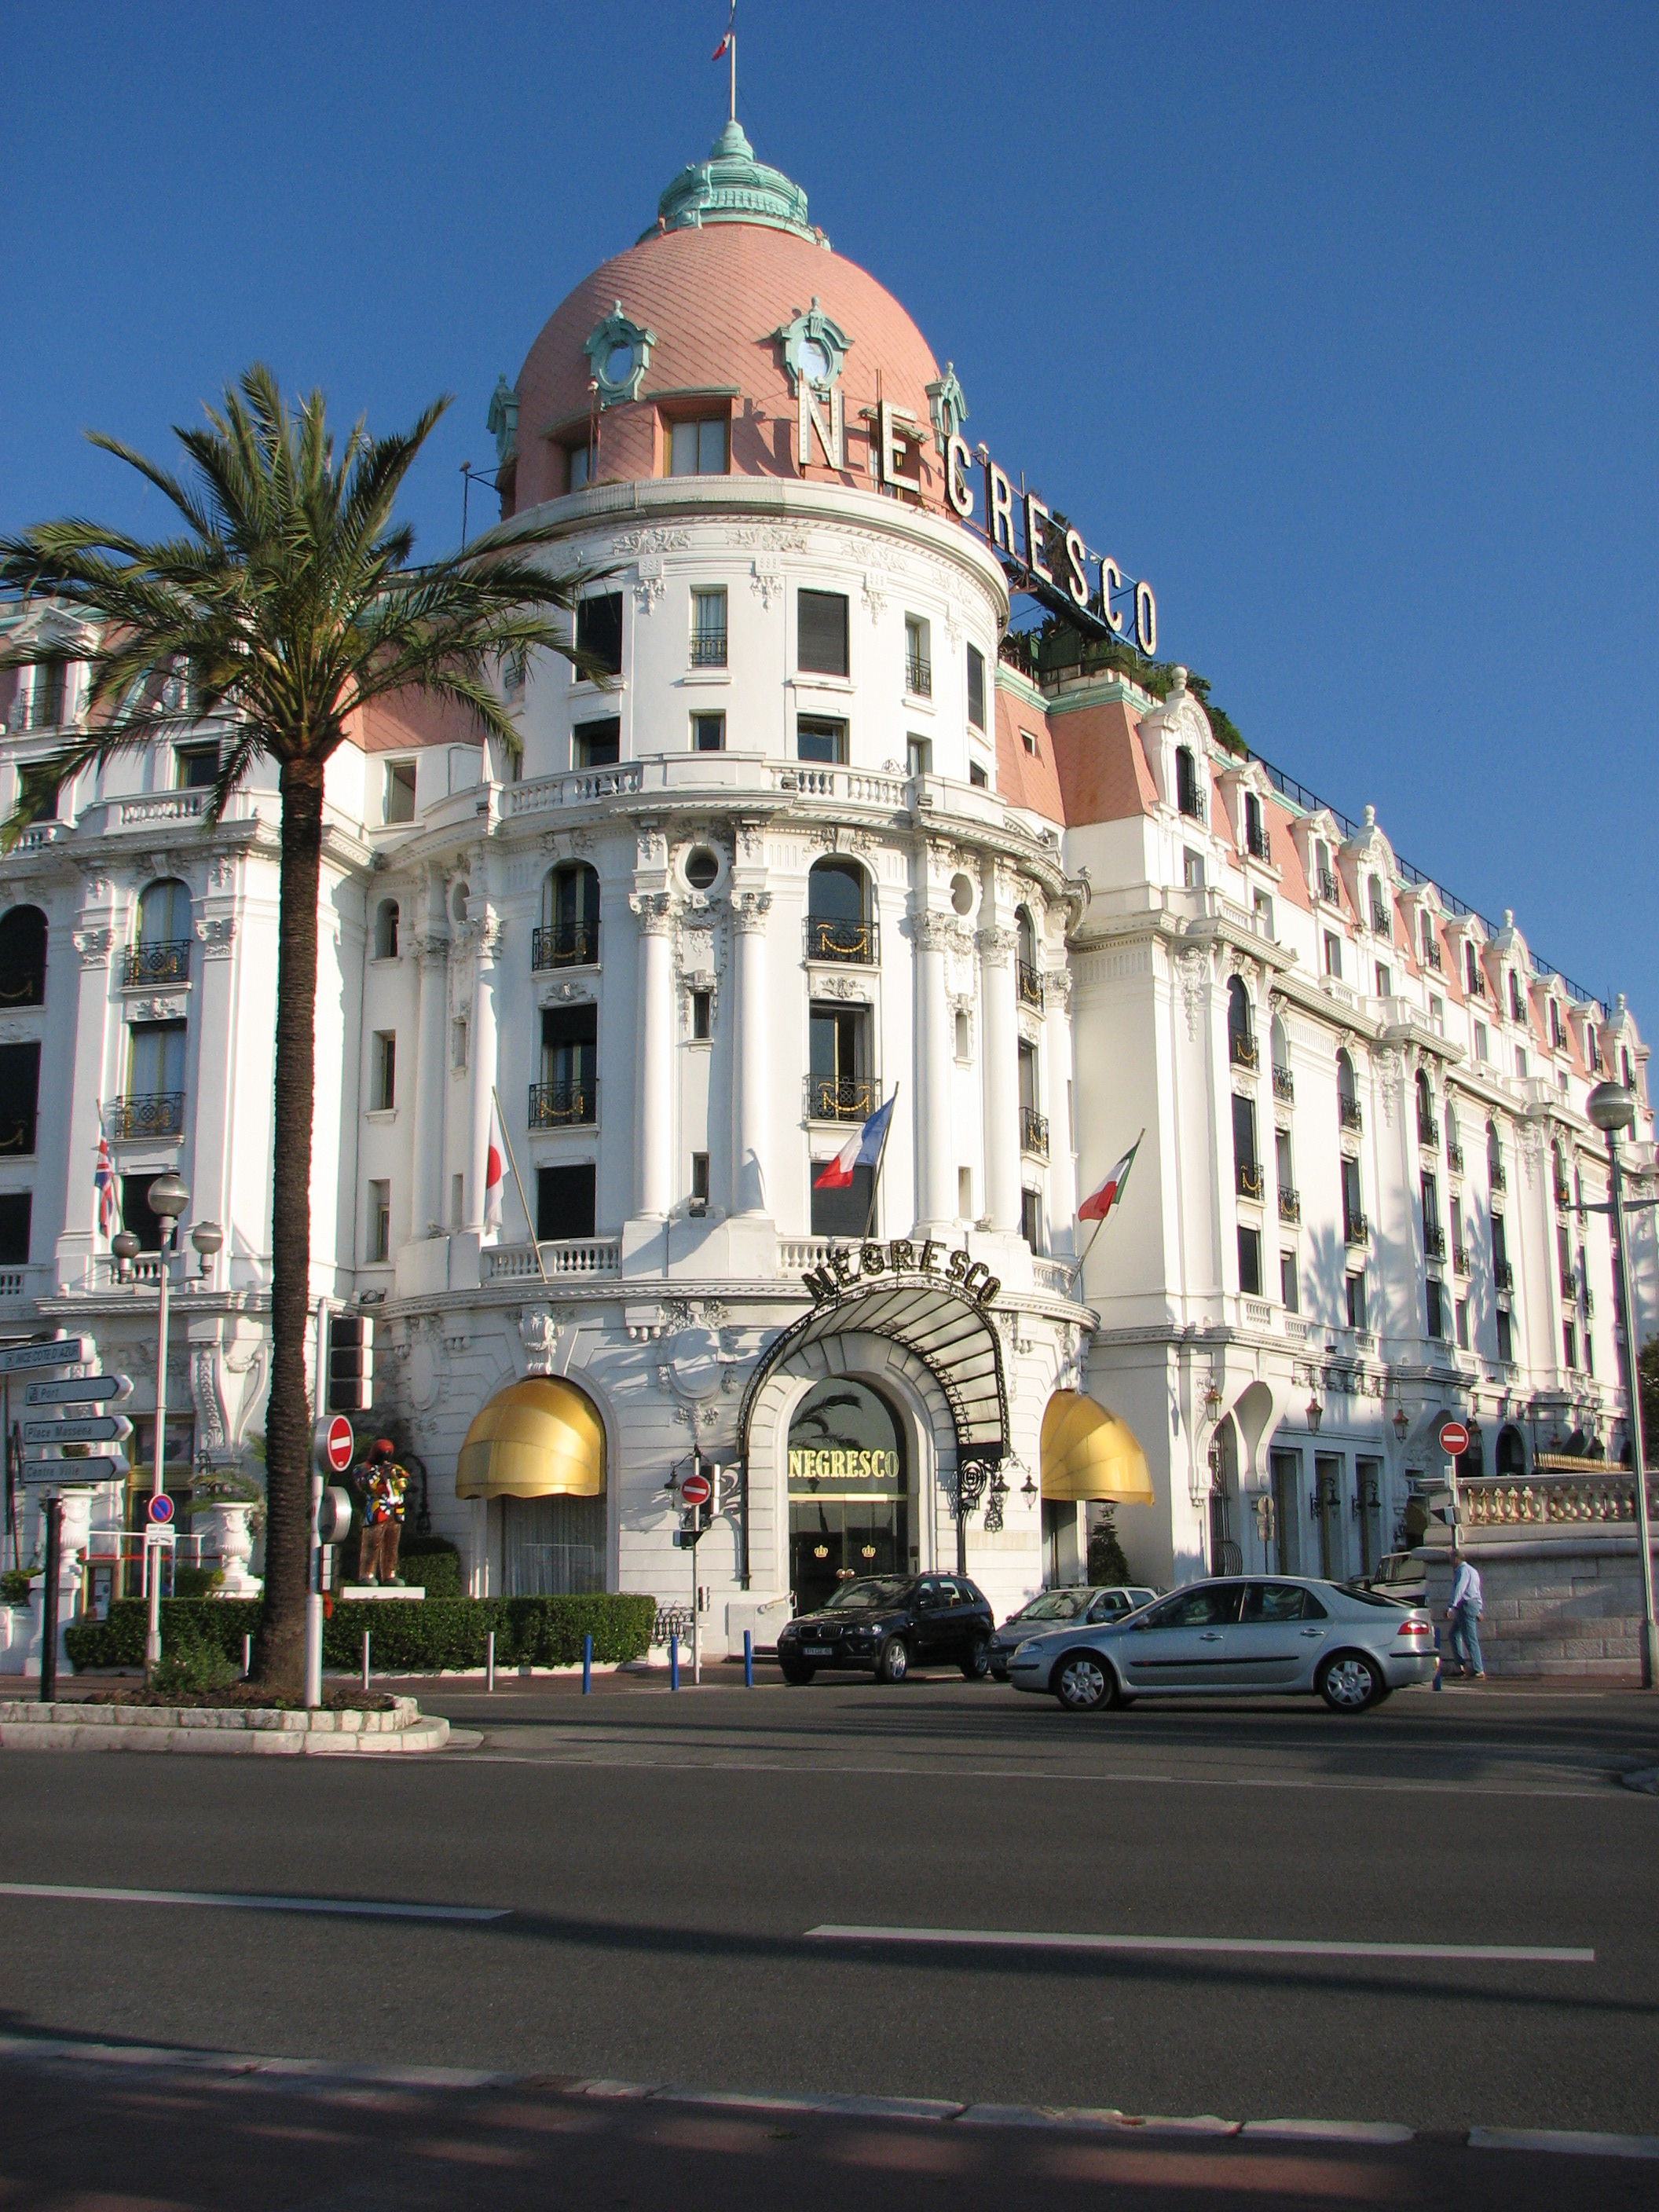 Www Hotel Negresco In